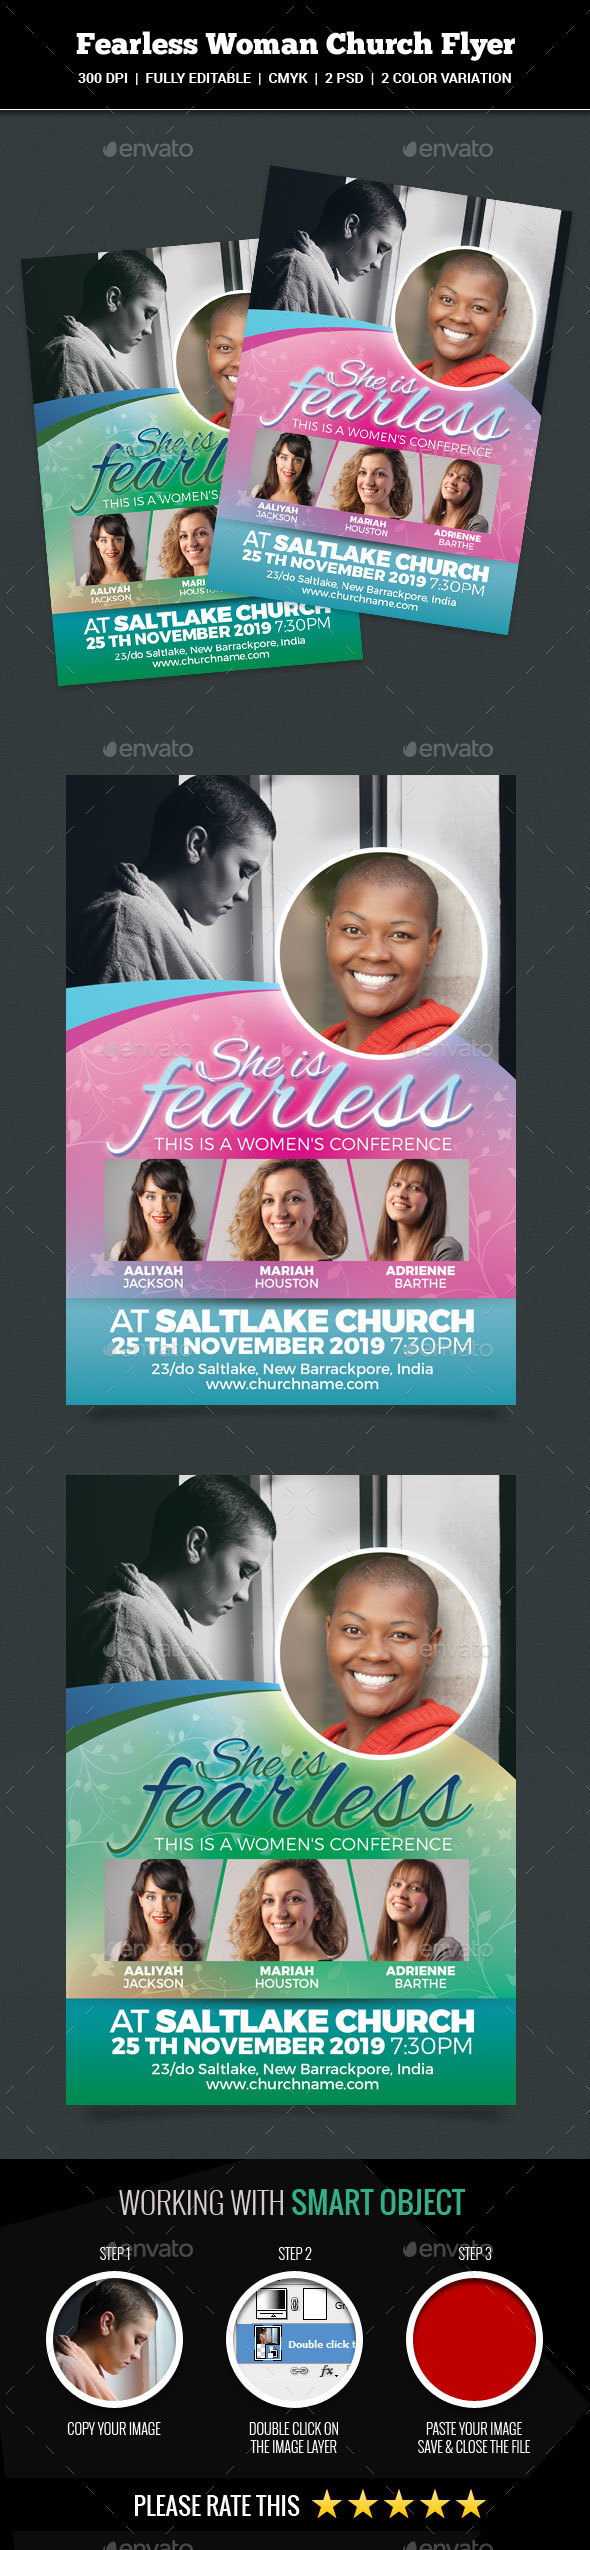 GraphicRiver Fearless Woman Church Flyer 20913342